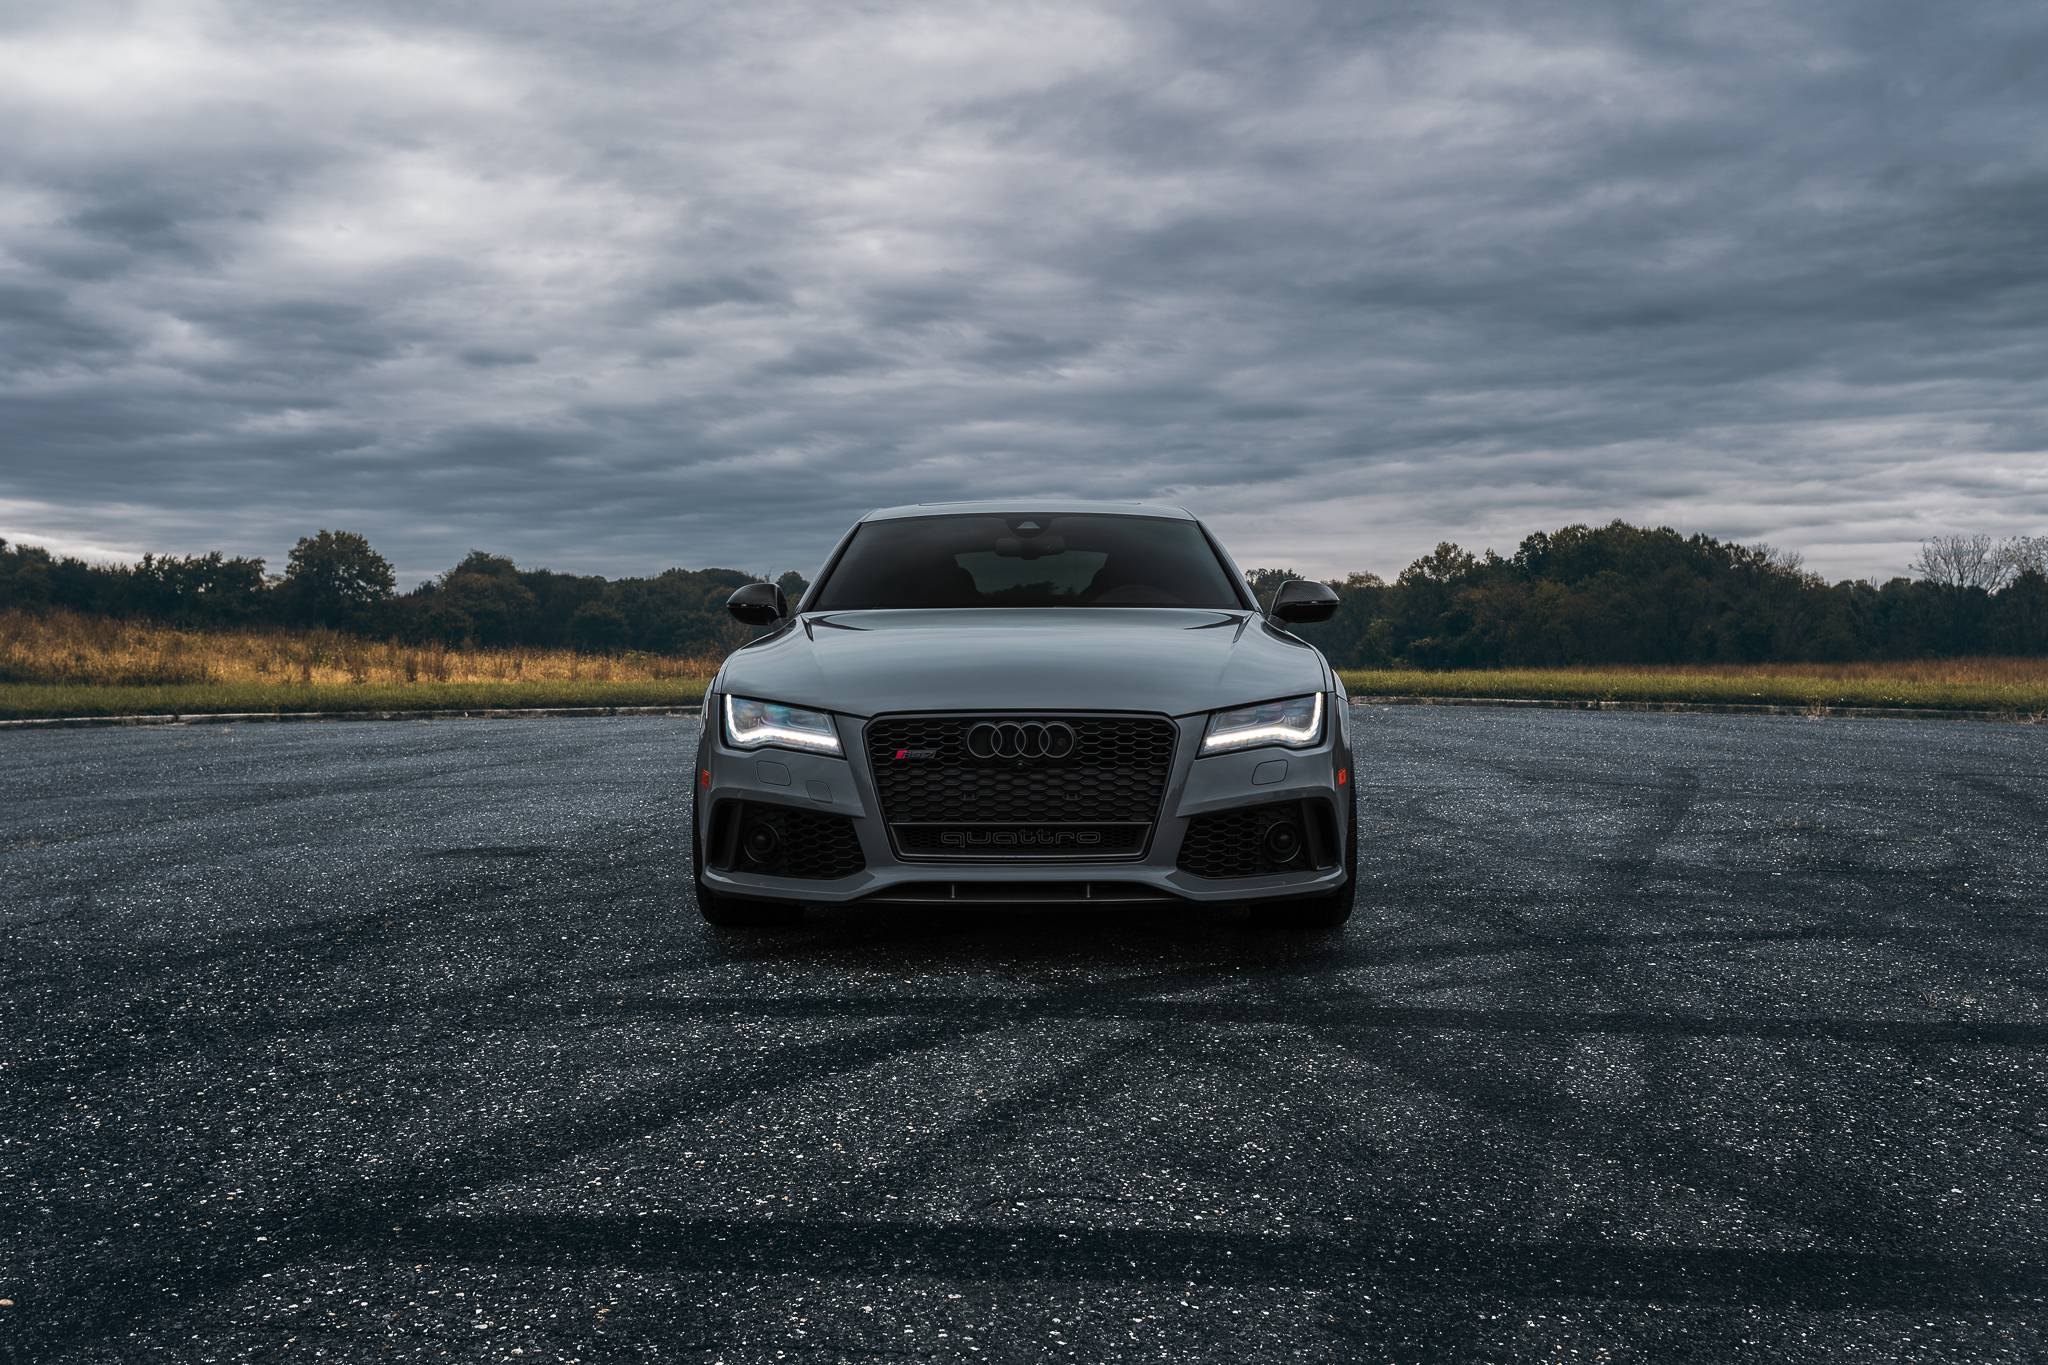 Audi RS7 2018 HD Images In High Quality